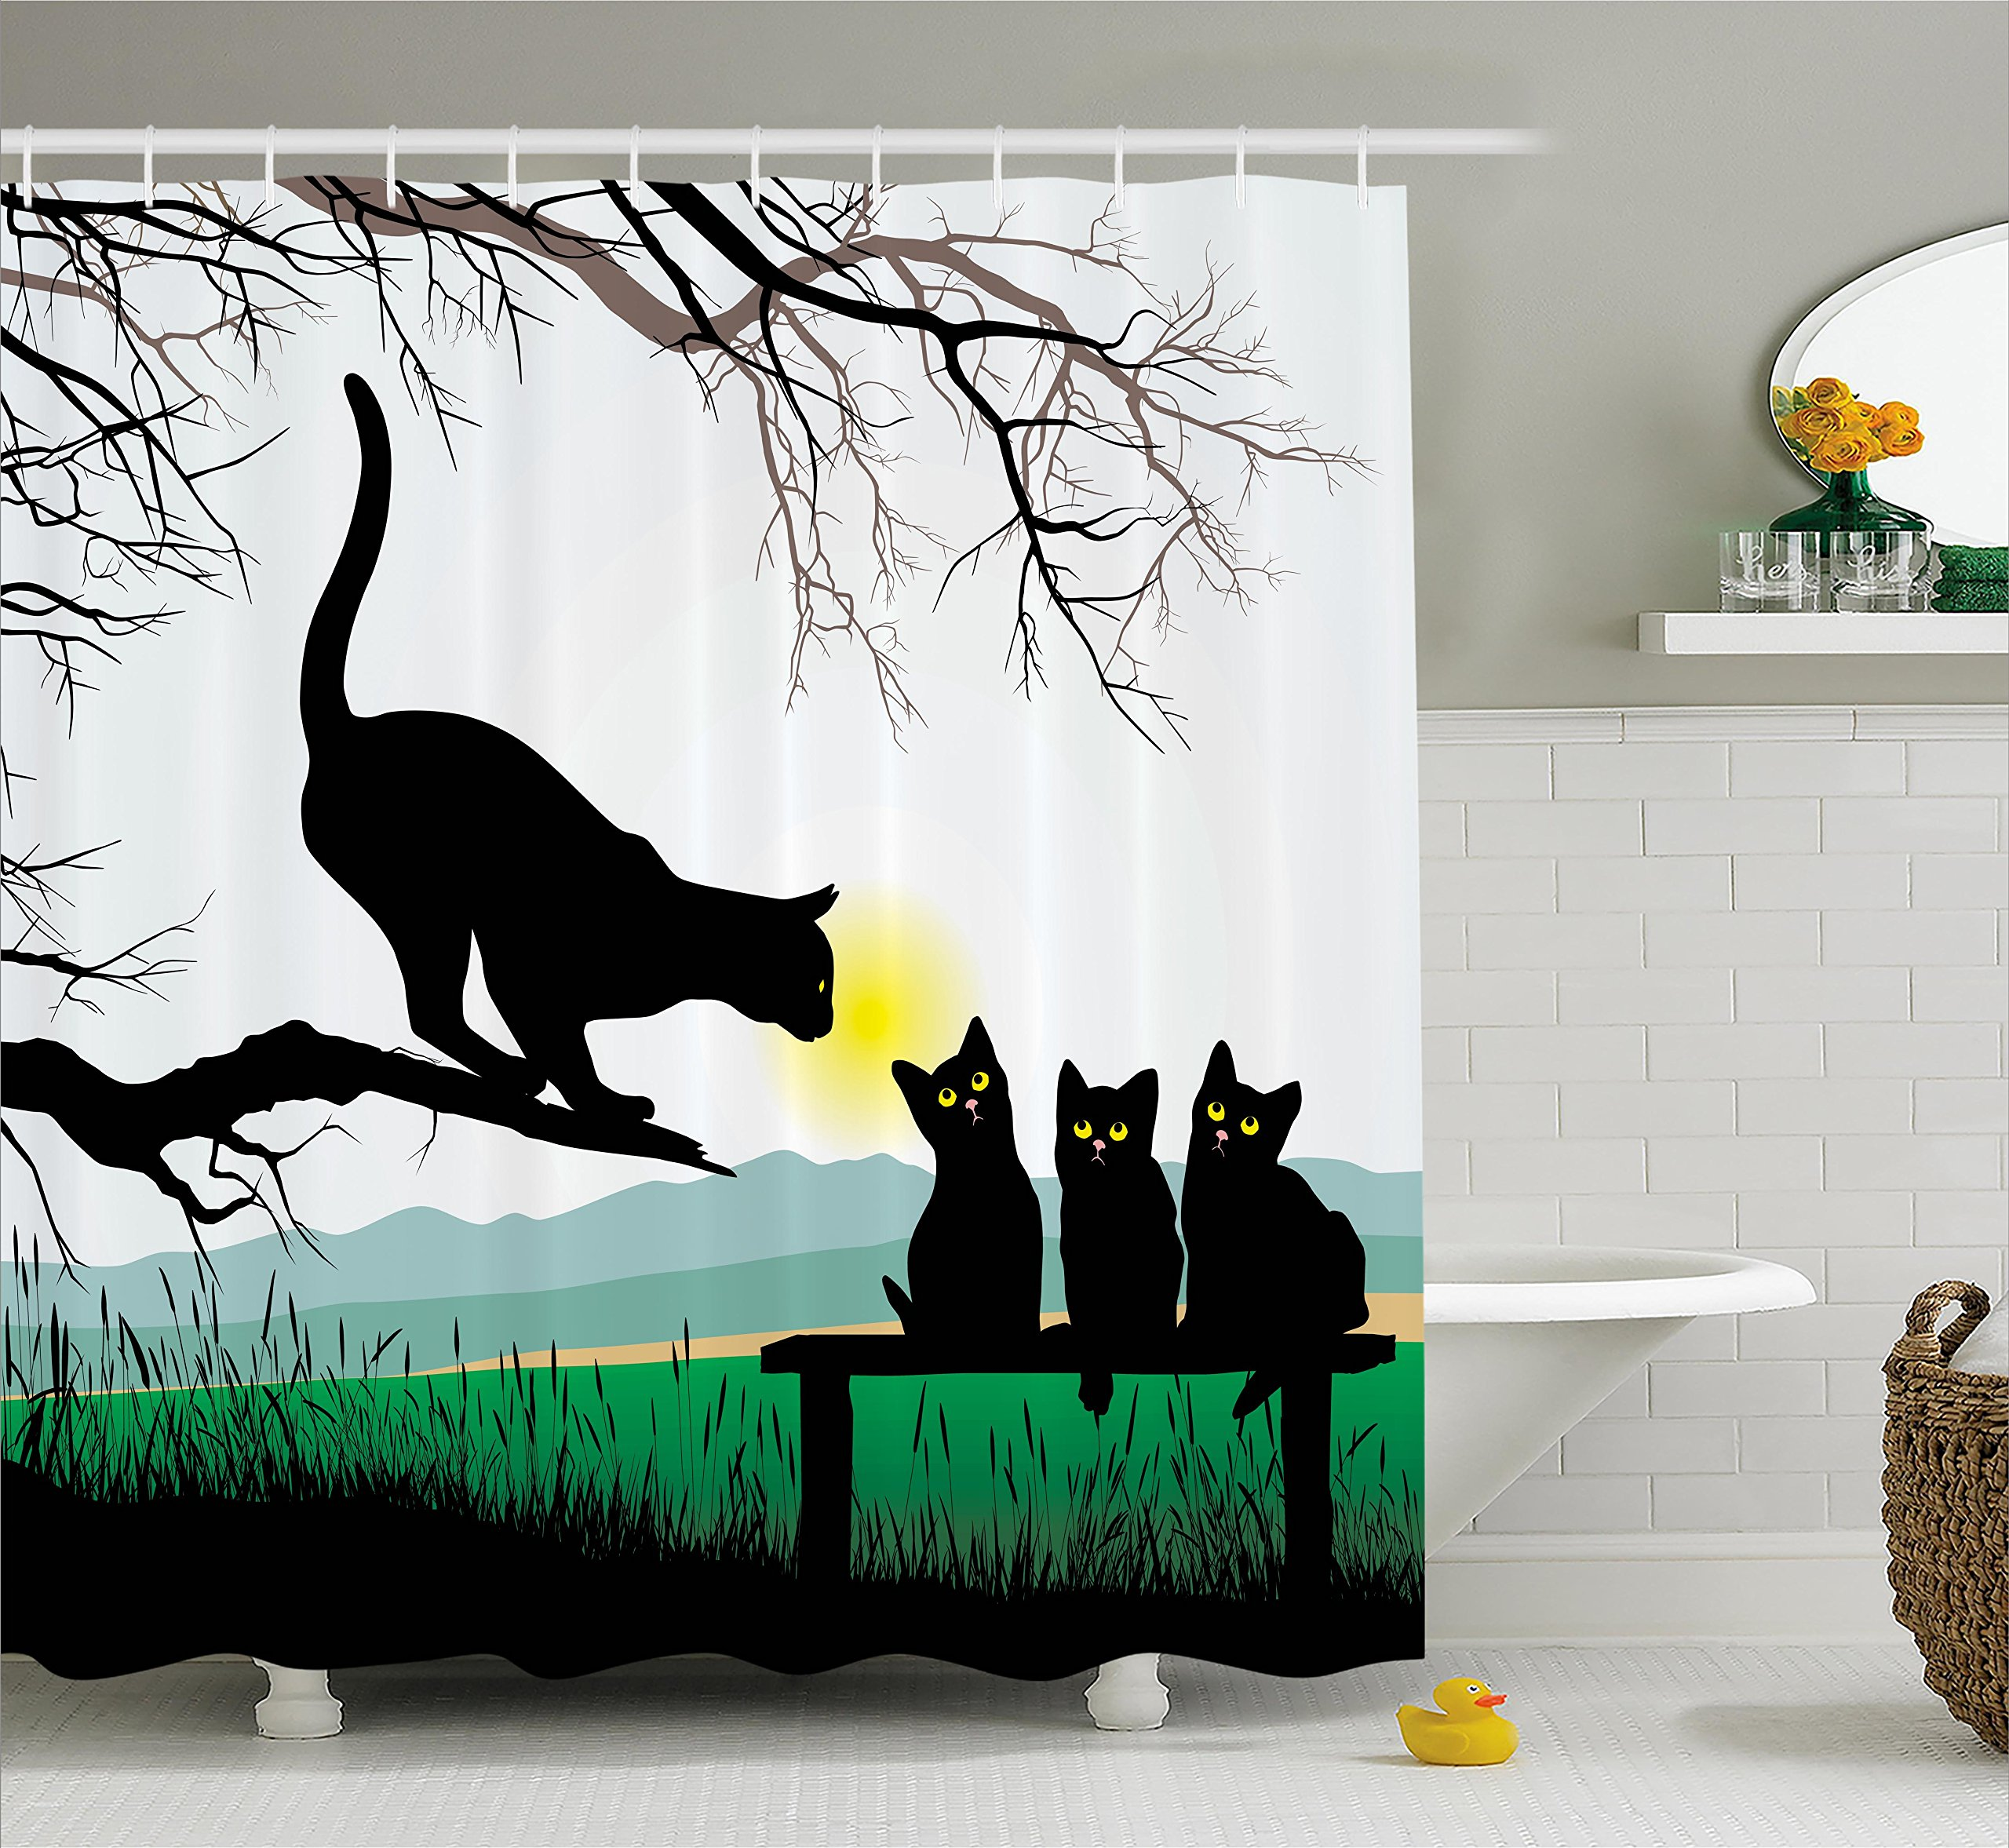 Ambesonne Cat Shower Curtain, Mother Cat on Tree Branch and Baby Kittens in Park Best Friends I Love My Kitty Graphic, Fabric Bathroom Decor Set with Hooks, 75 inches Long, Multi